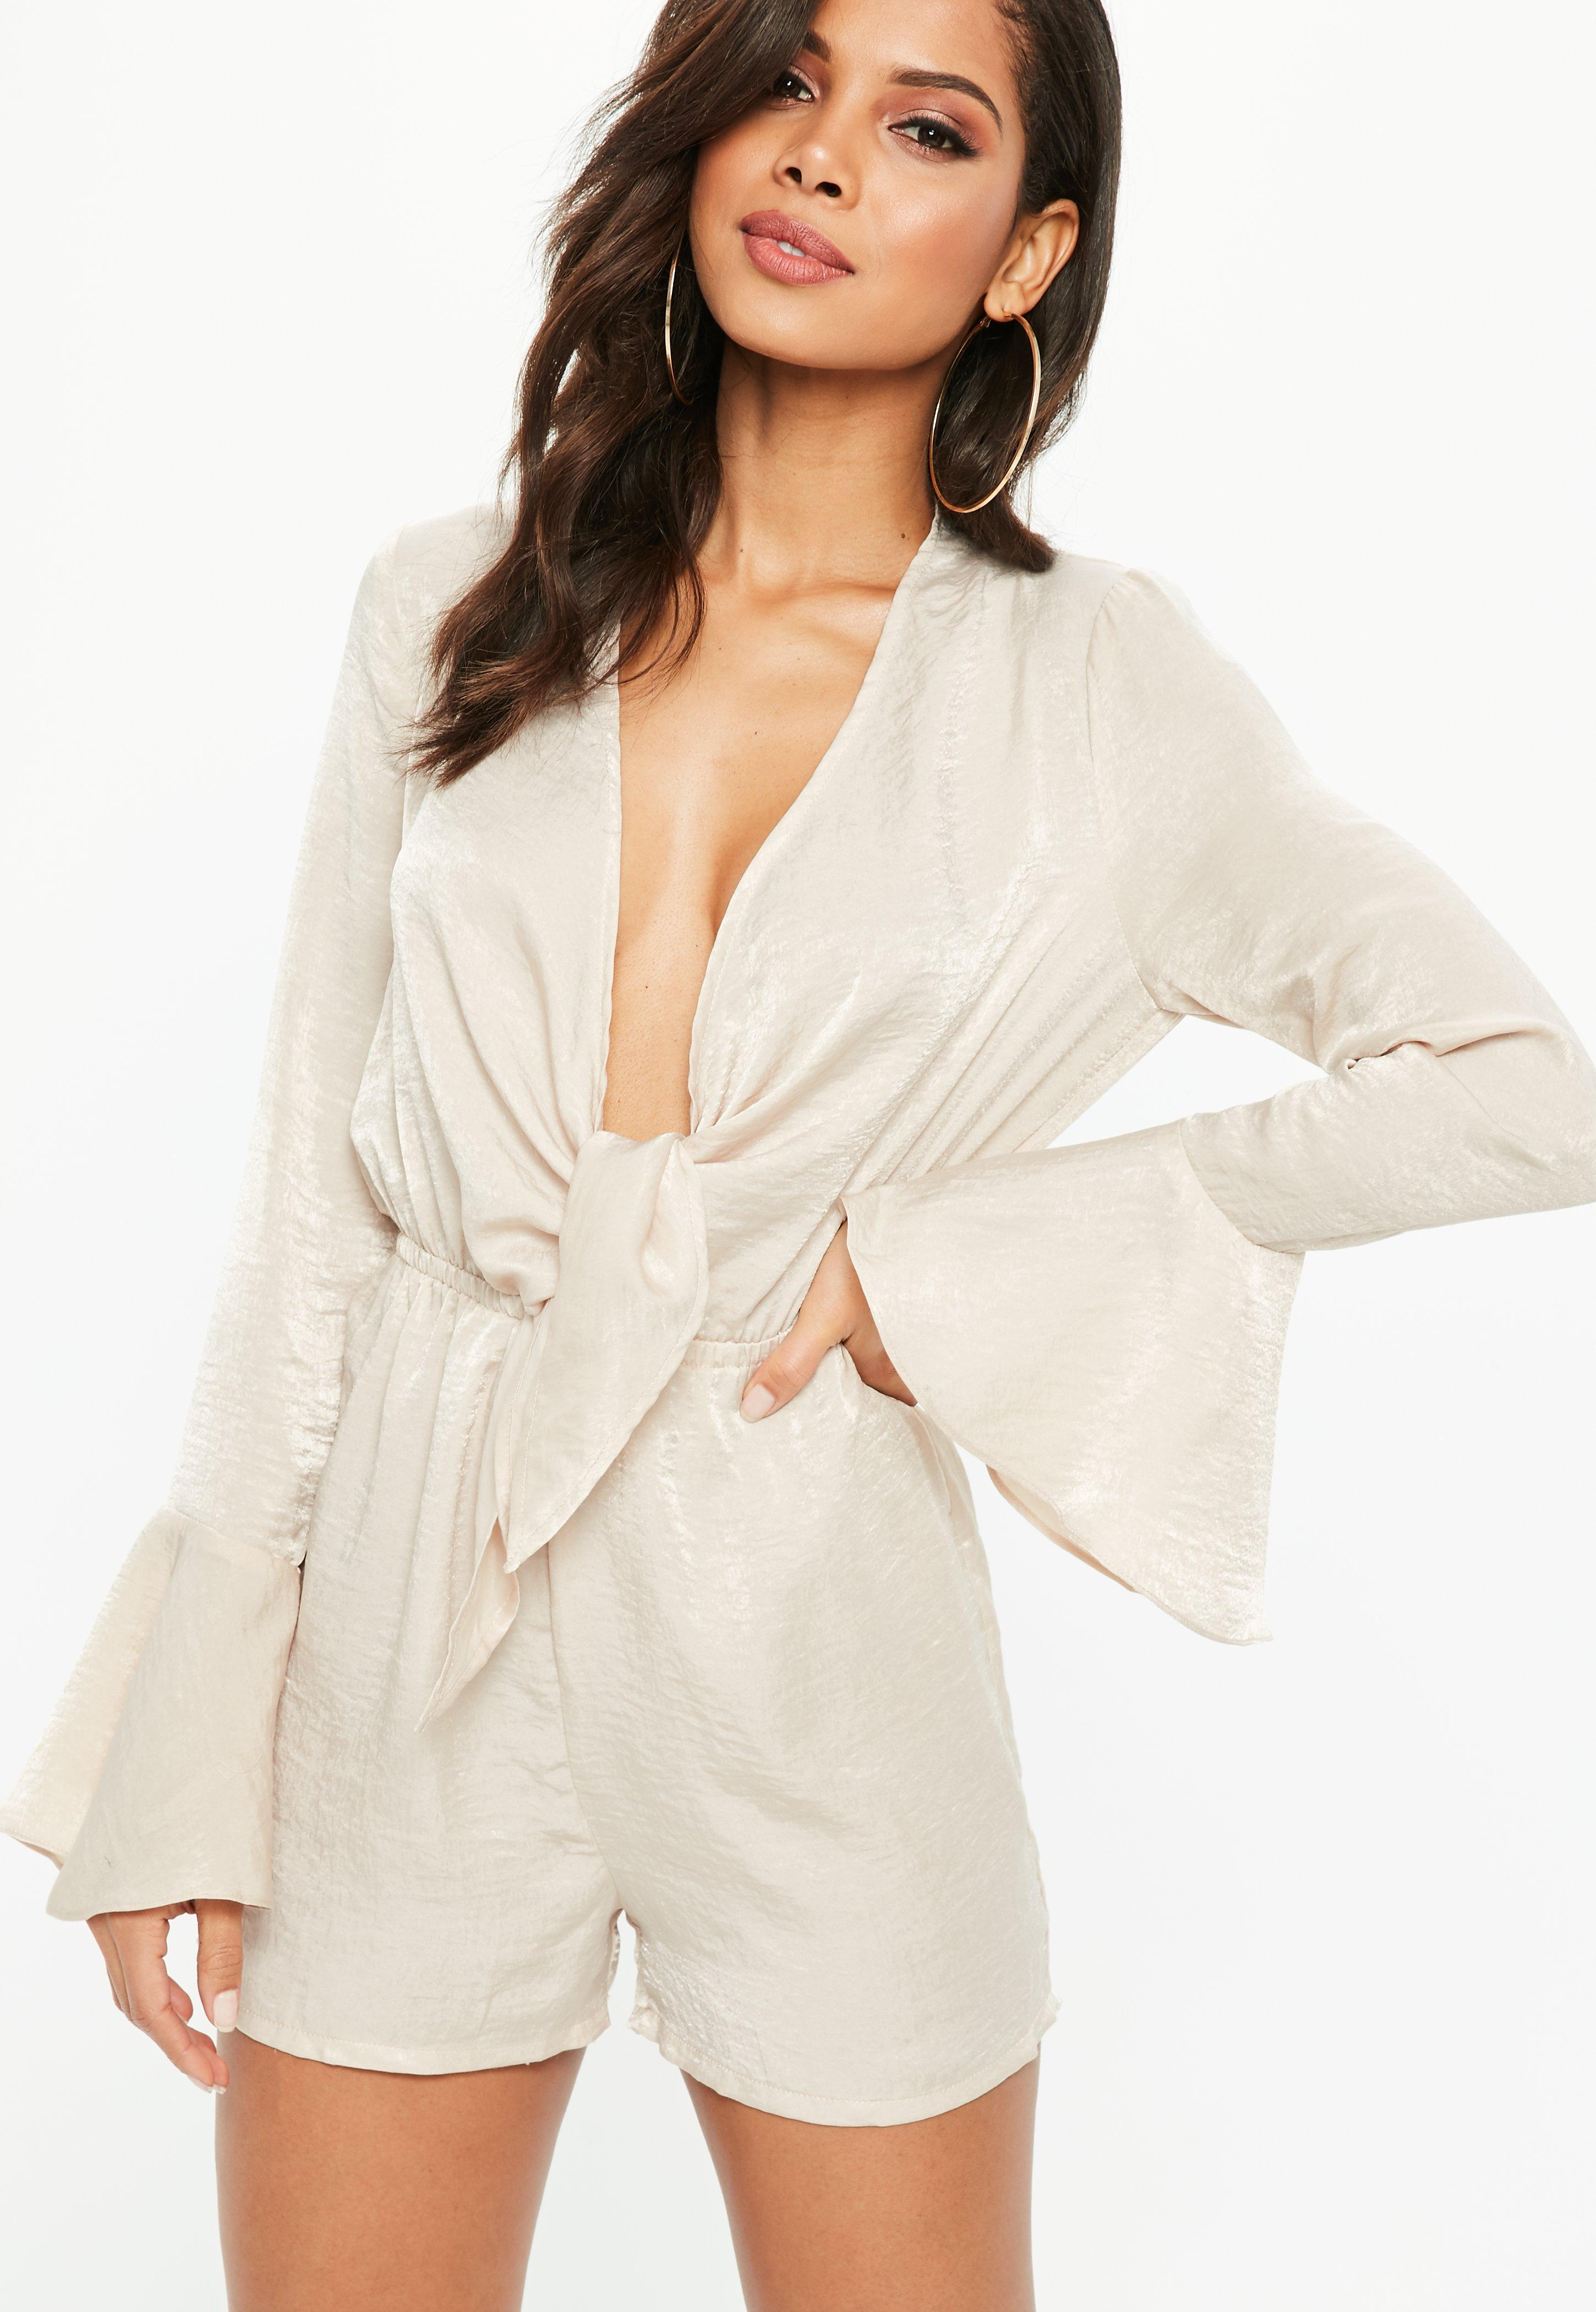 Tie Waist Shirt Front Playsuit - Stripe beige FRNCH Pick A Best Sale Online Buy Cheap Clearance Official Cheap Sale Free Shipping Outlet 2018 IFJbvHcrzJ